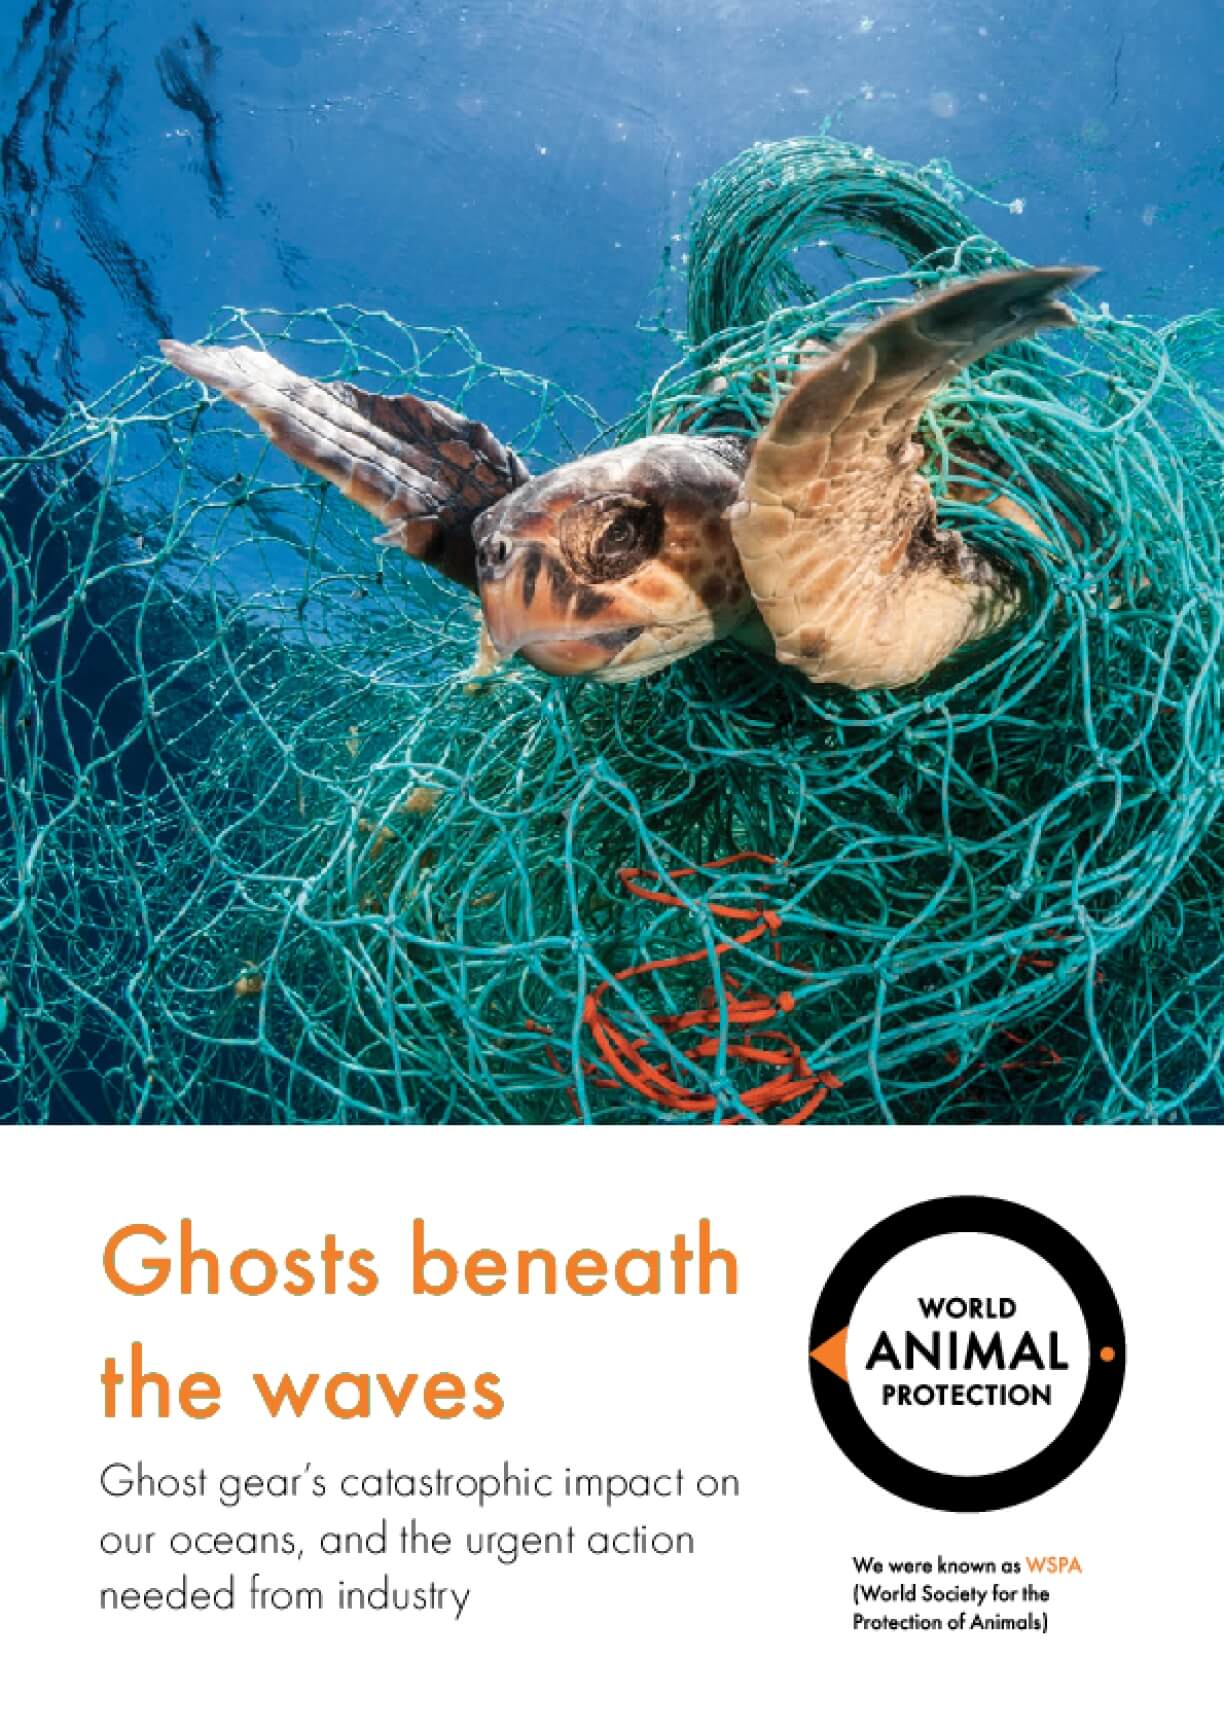 Ghosts beneath the waves